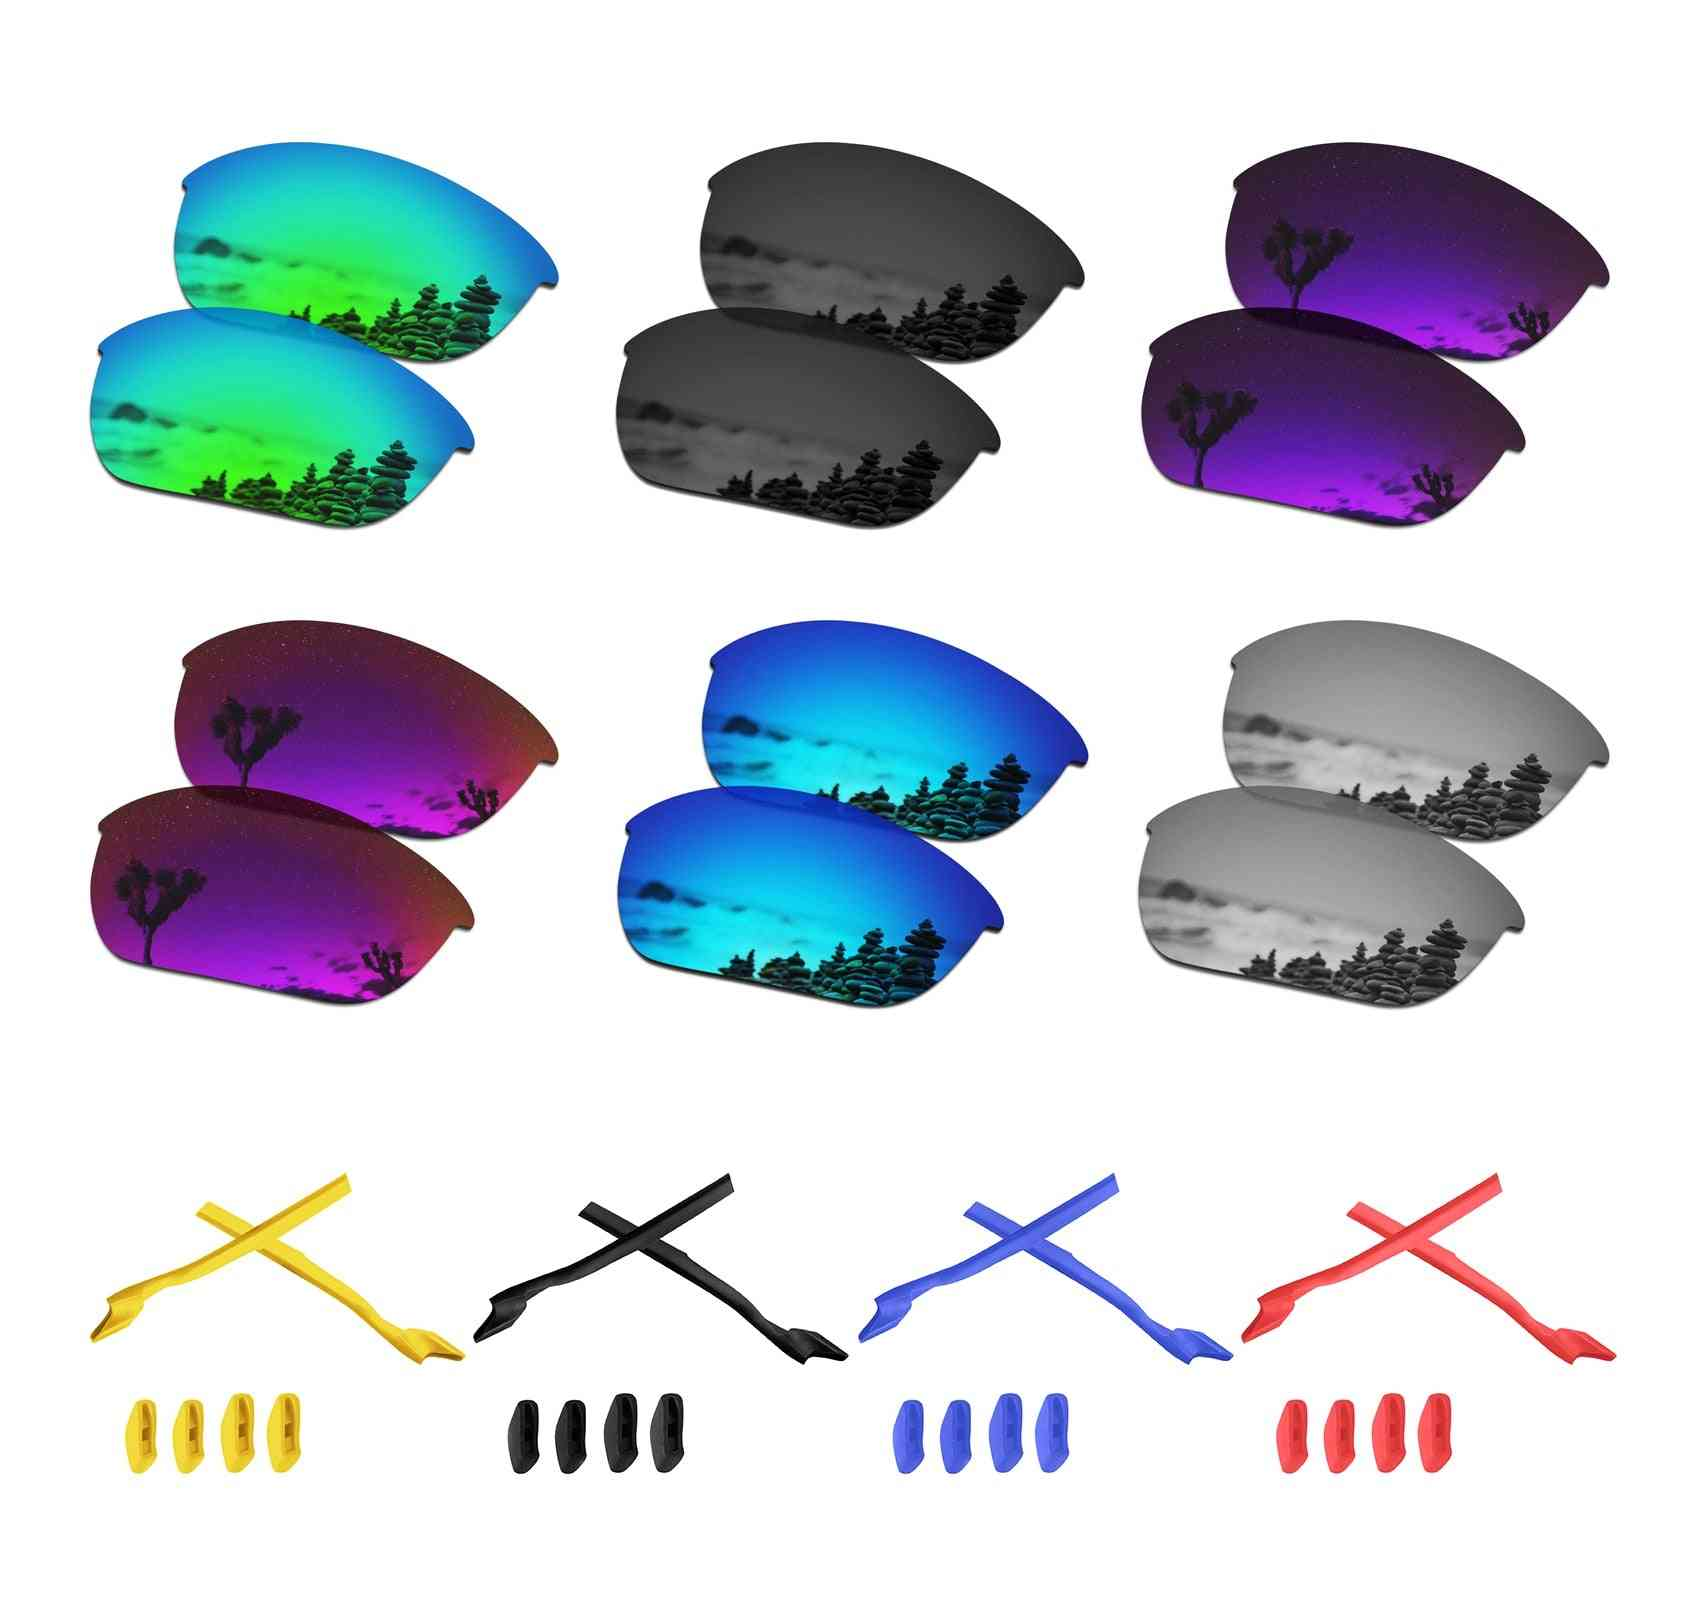 Polarized Replacement Lenses For Half Jacket, 2.0 Sunglasses